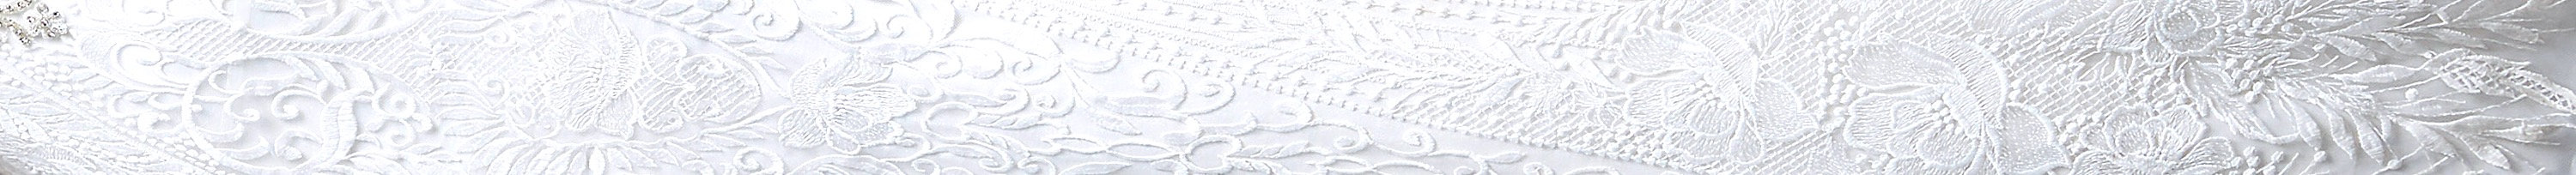 section of dress for header_edited.jpg